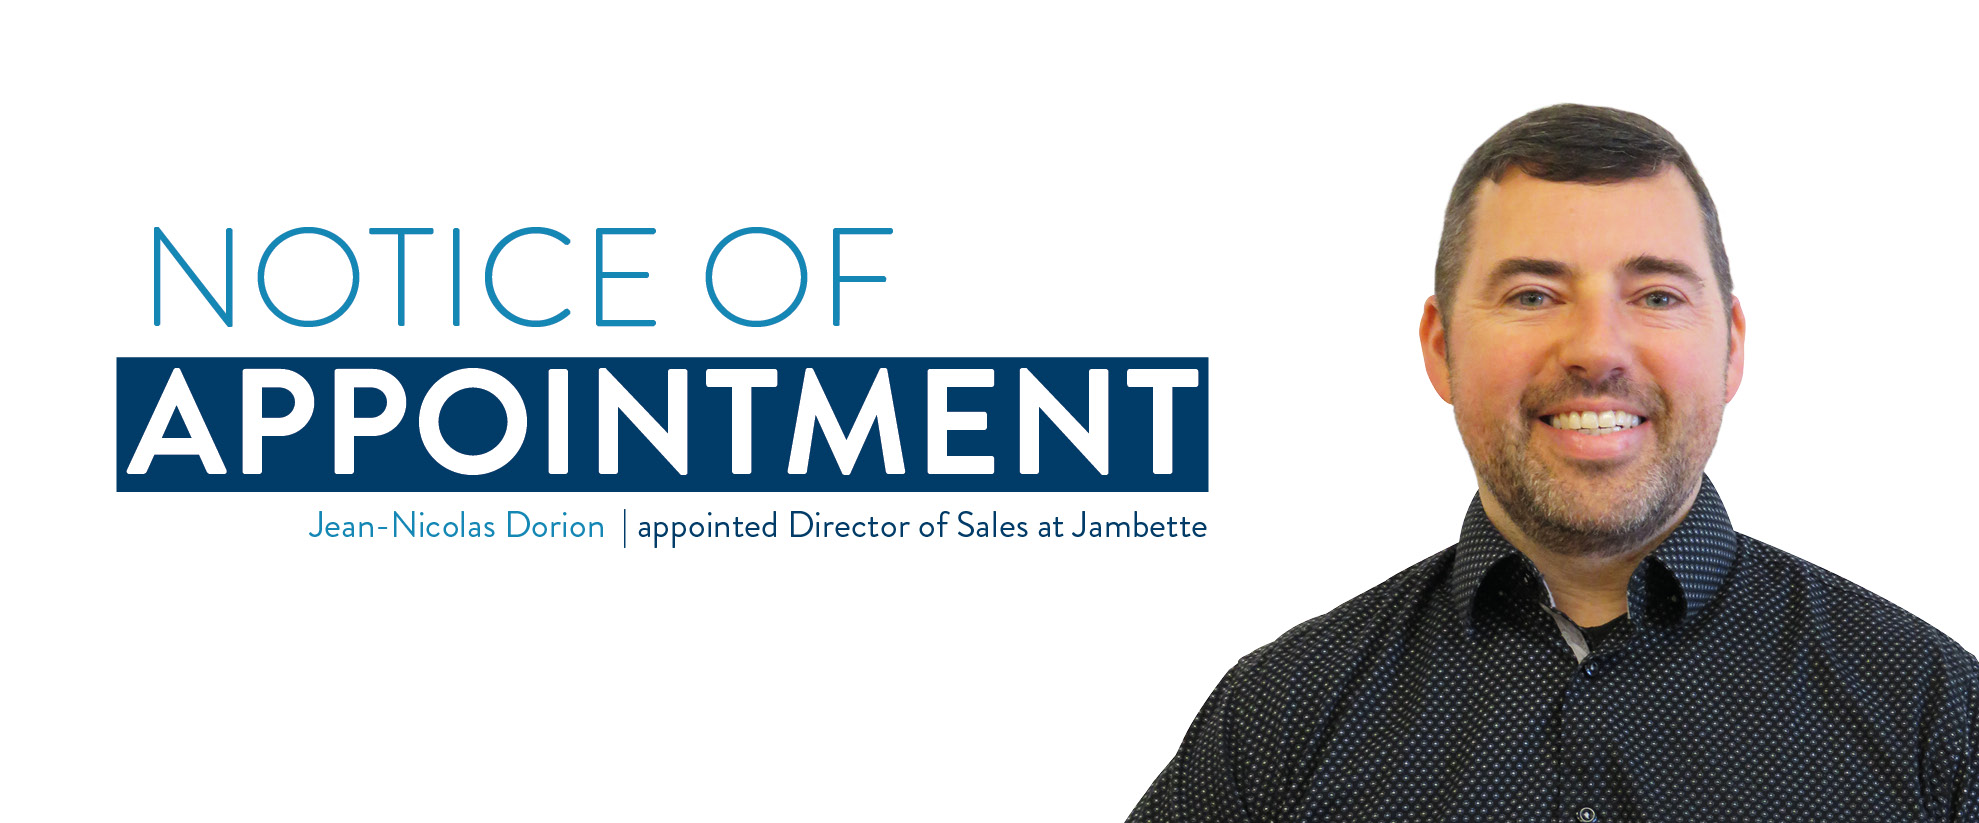 Notice of appointment: Jean-Nicolas Dorion named Director of Sales of Jambette